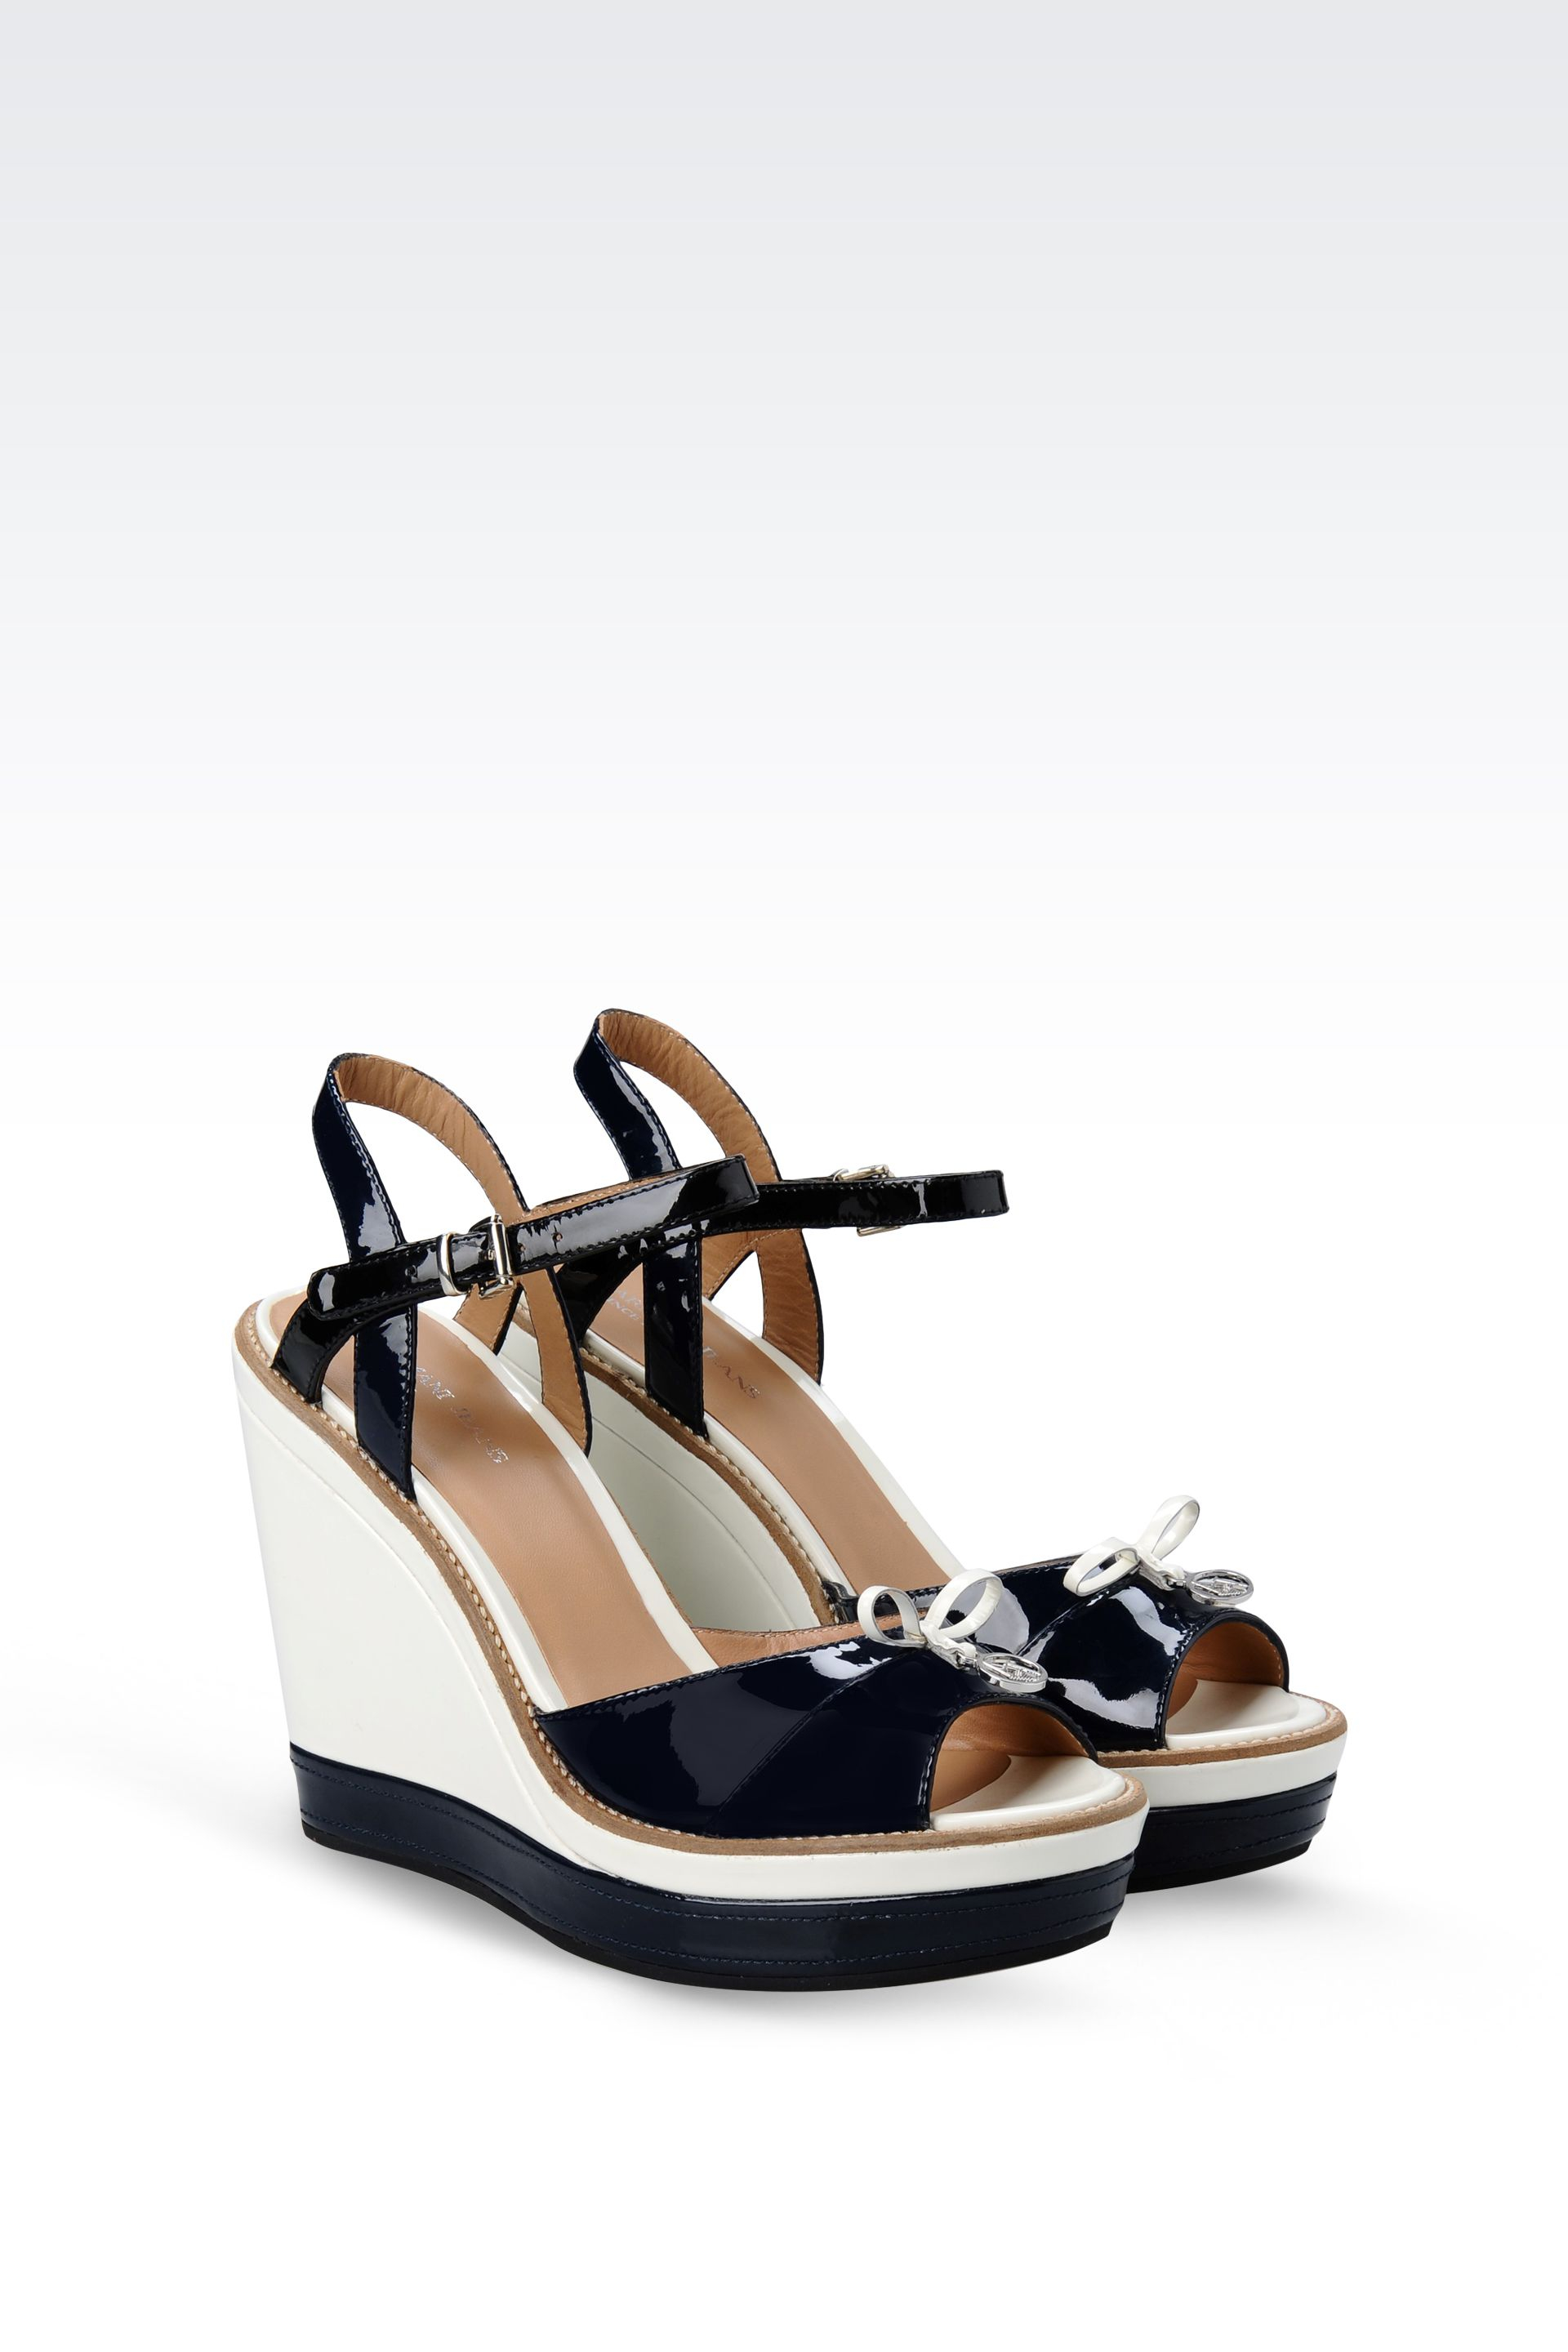 804d8efe2d76 Lyst - Armani Jeans Wedge Sandal in Twocolor Patent Effect Leather ...